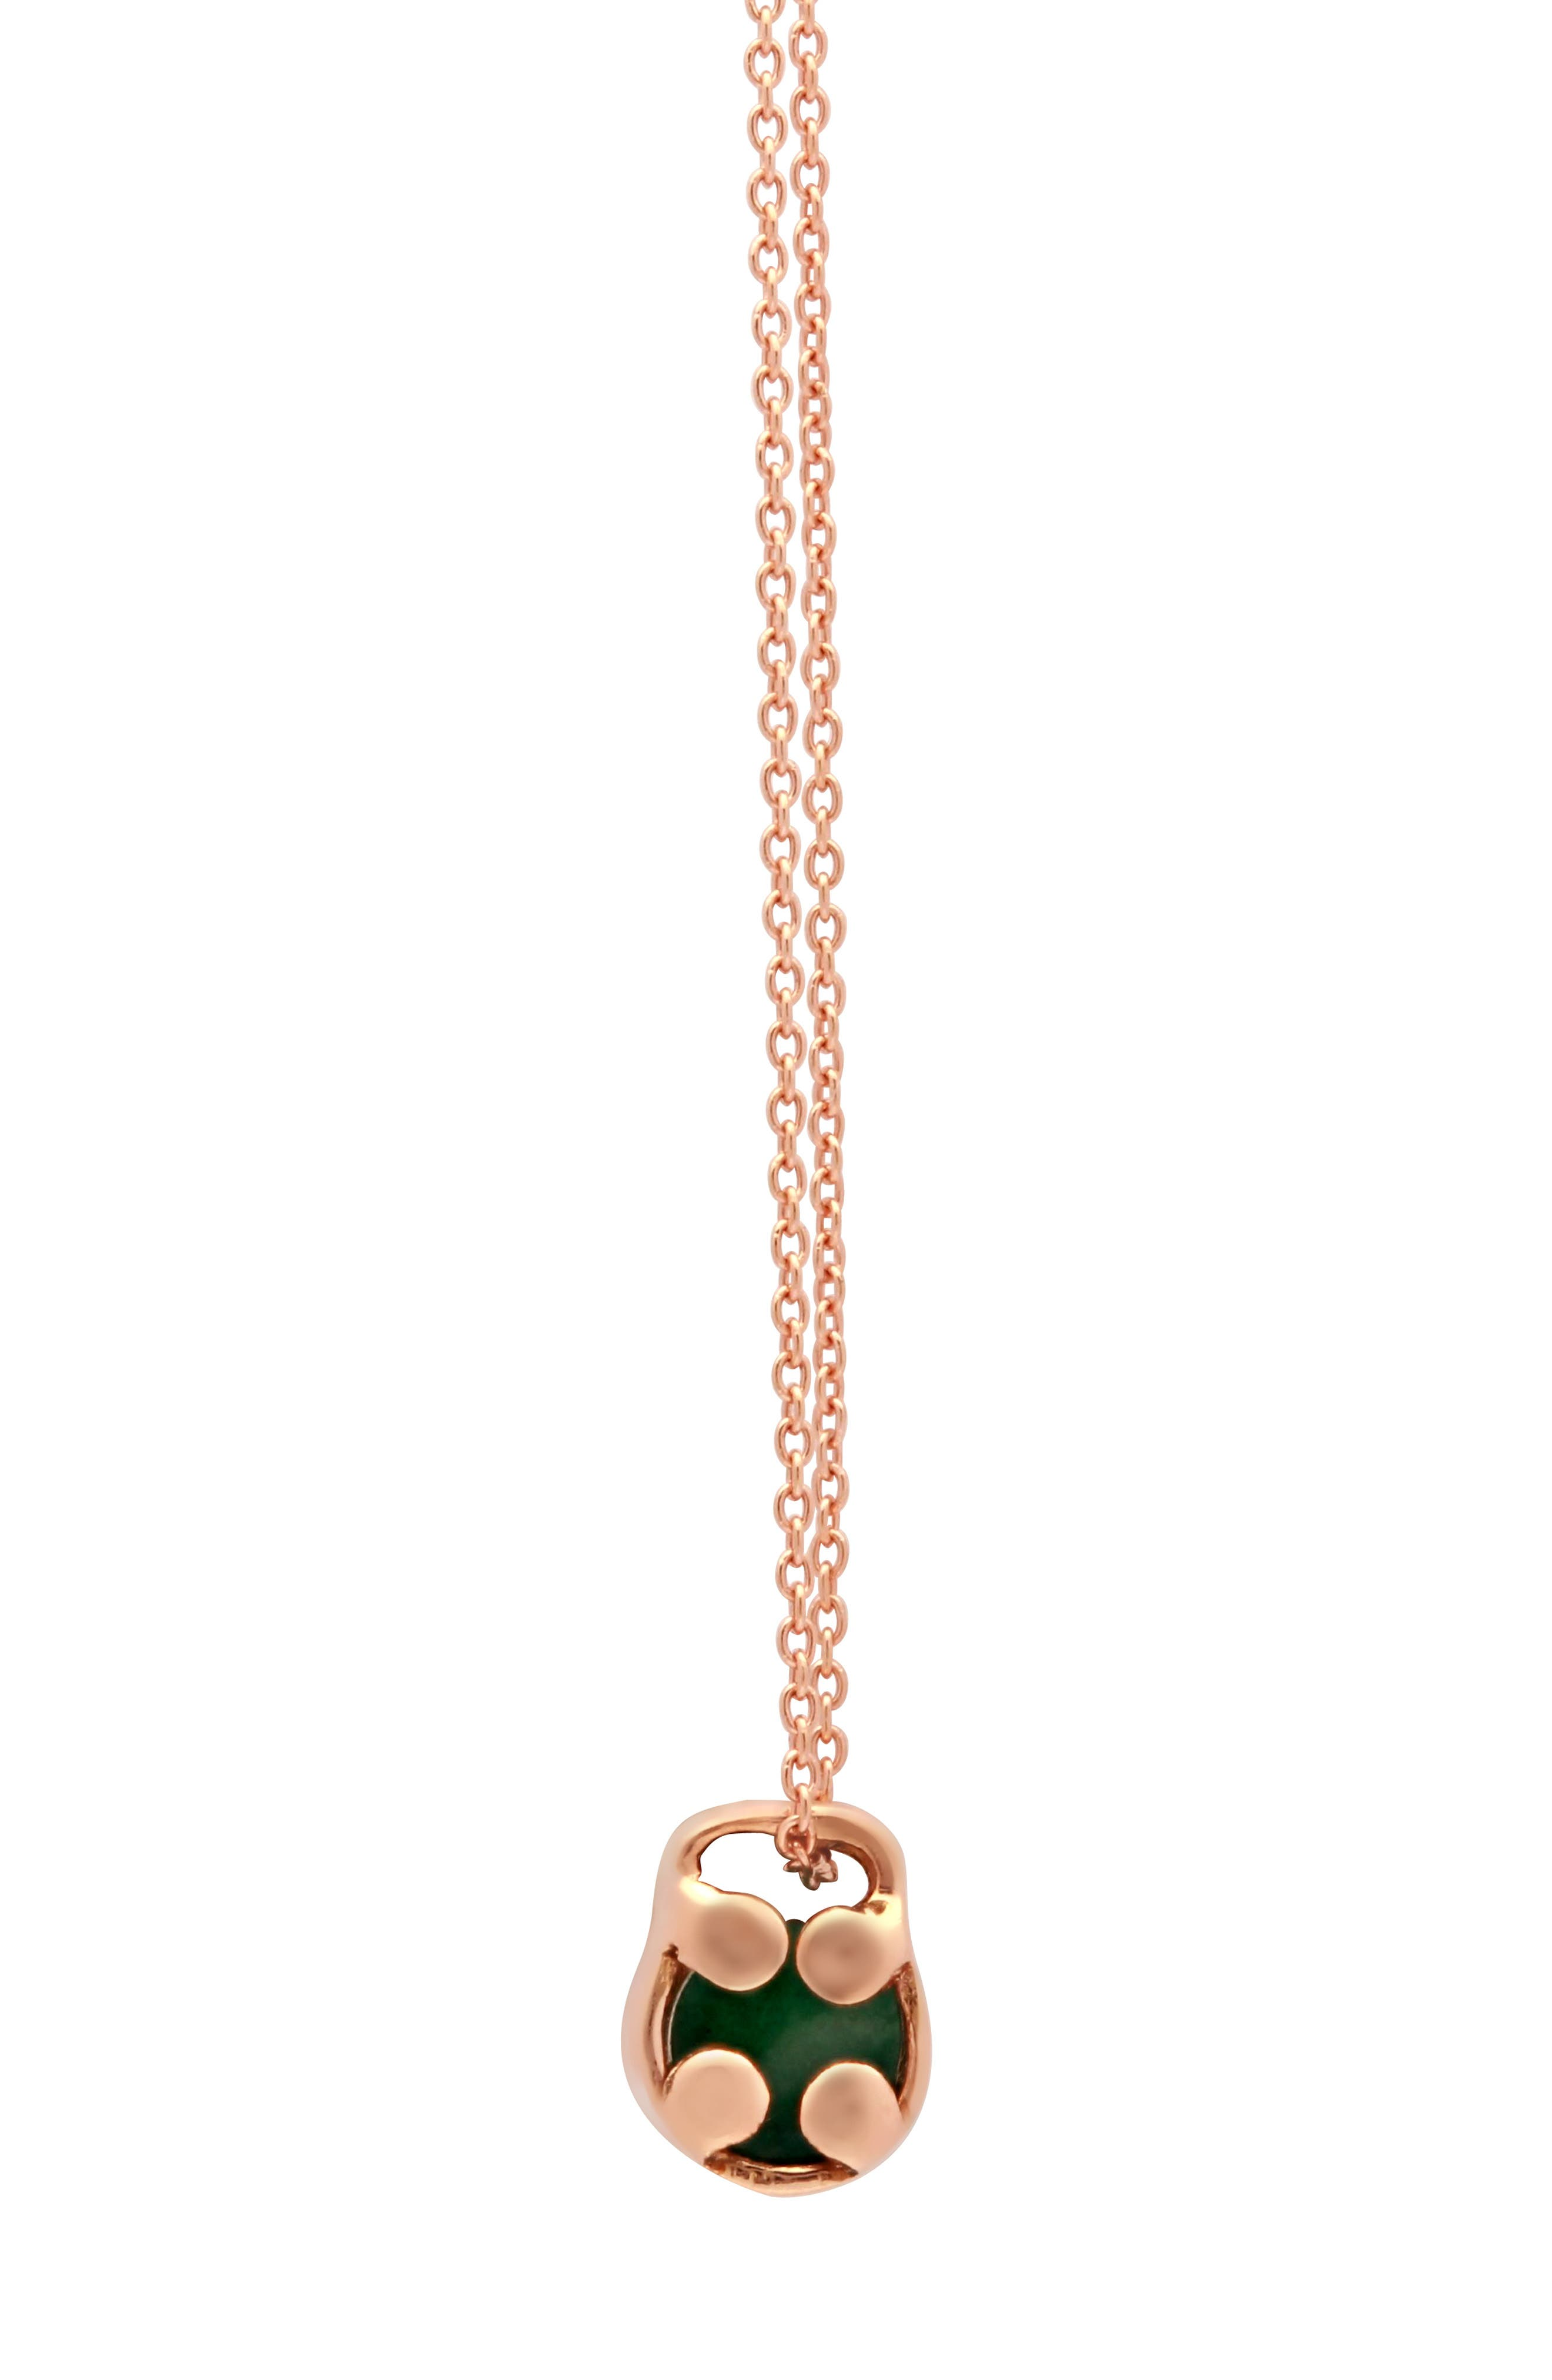 Optimism & Luck Aventurine Initial Barrel Initial Necklace,                             Alternate thumbnail 2, color,                             ROSE GOLD-A